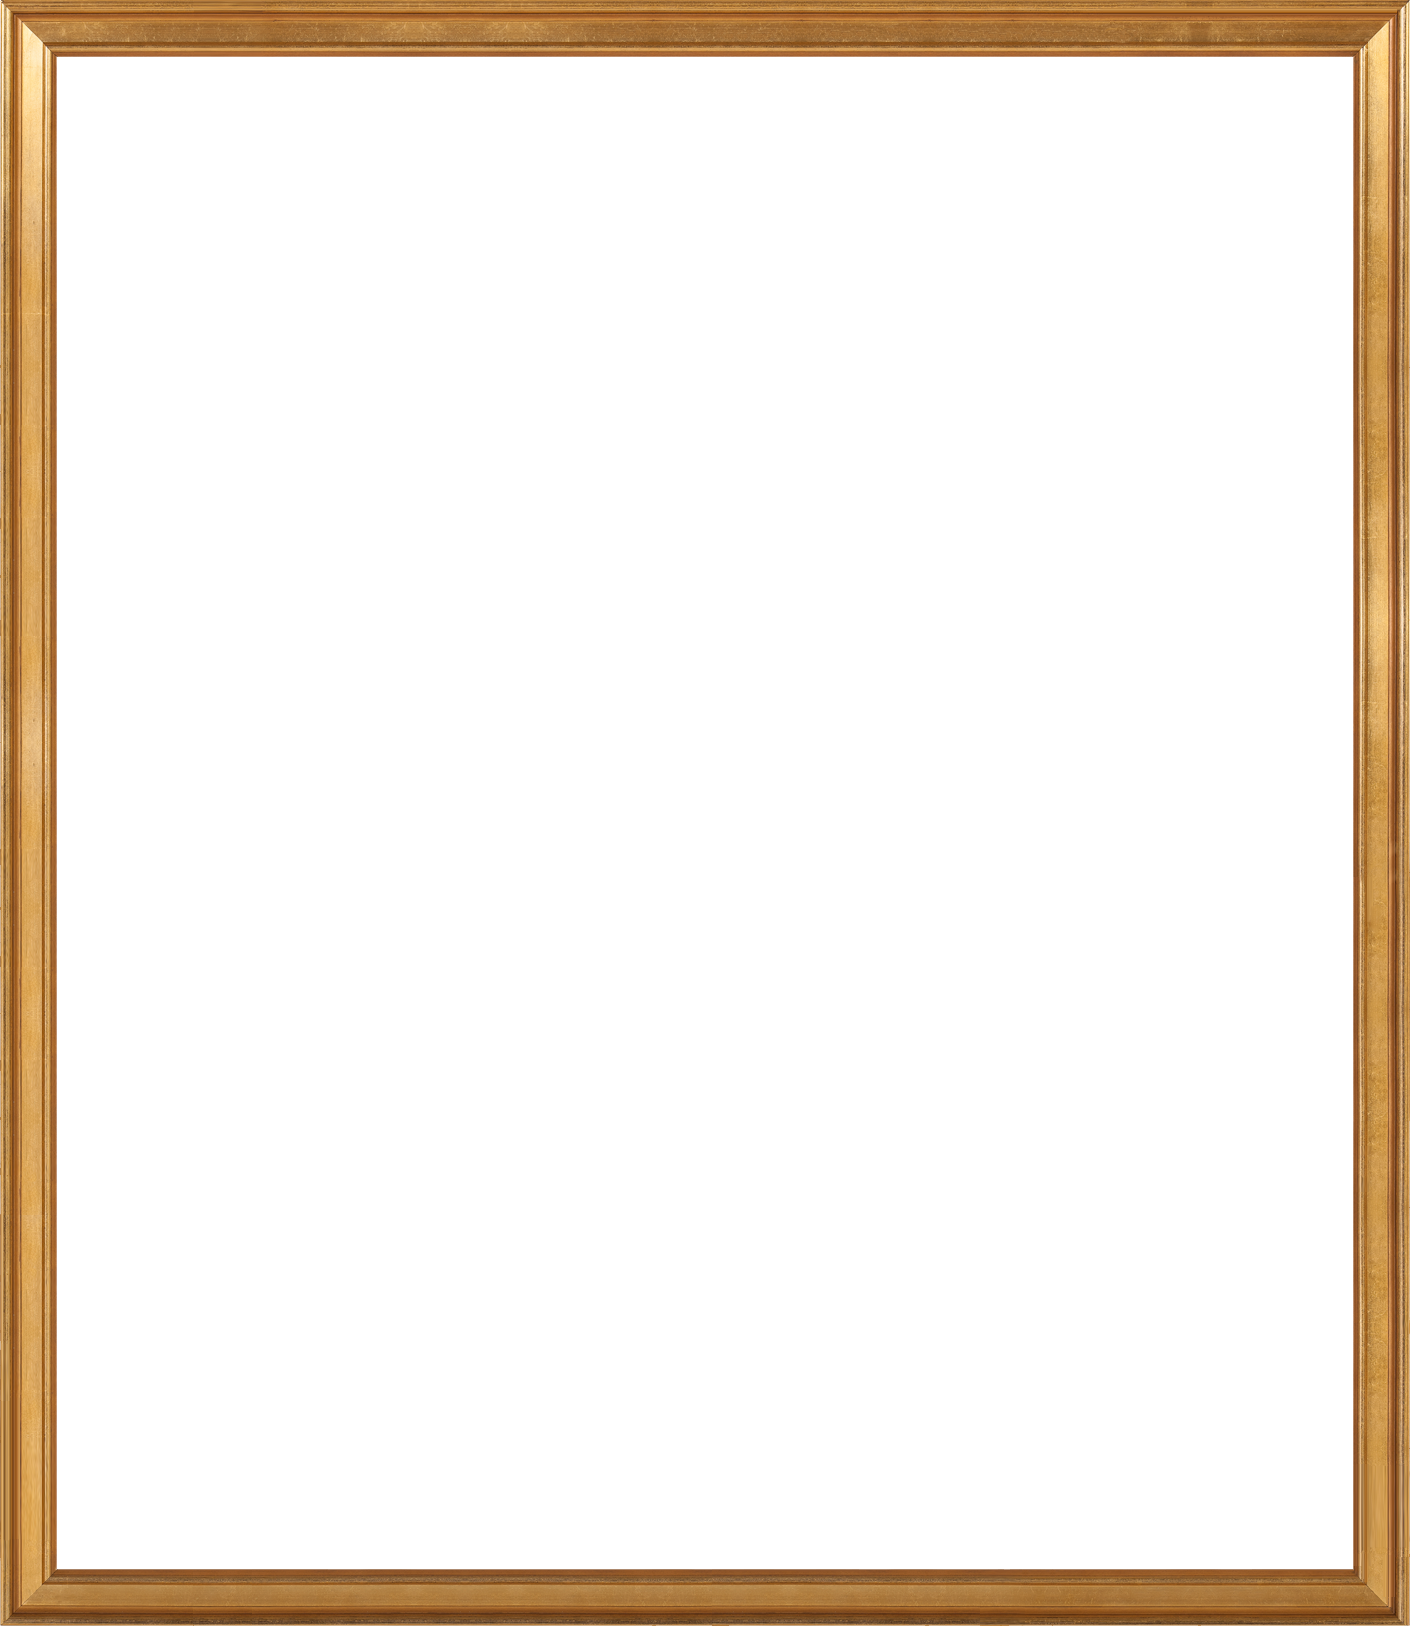 Gold Frame PNG HD